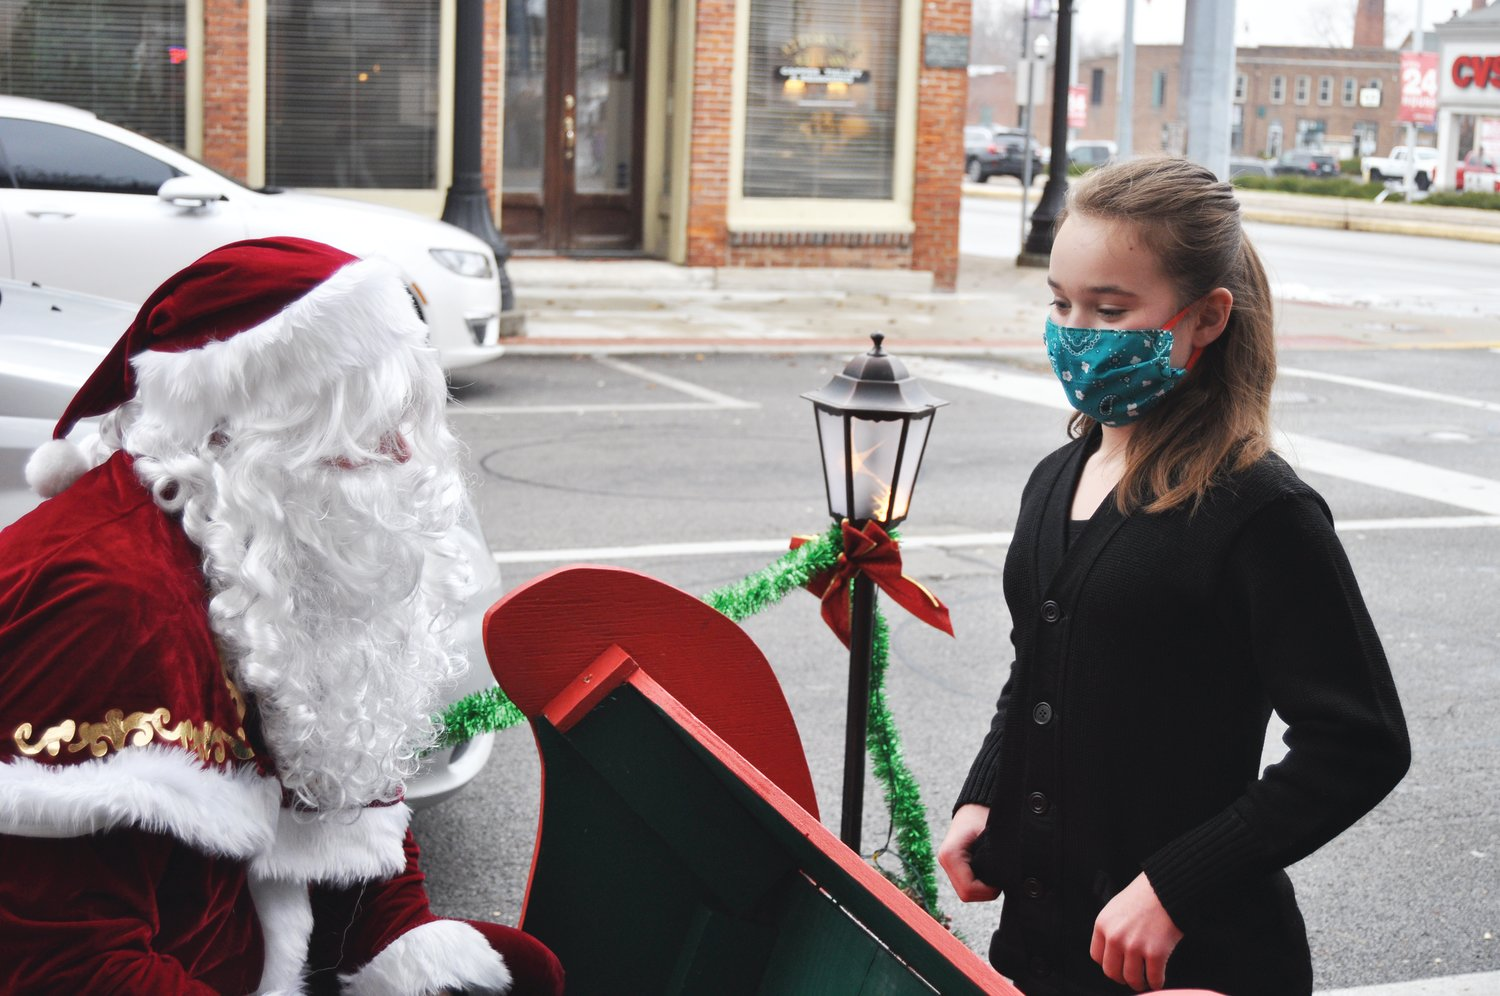 Acelyn Starcevich, 10, gives her wish list to Santa at Brothers Pizza Company on Saturday. St. Nick came to the restaurant with his elves and a reindeer to visit children, who could walk up to his sleigh or deliver their lists from the car. Children received a toy and a CD featuring music from local artists.